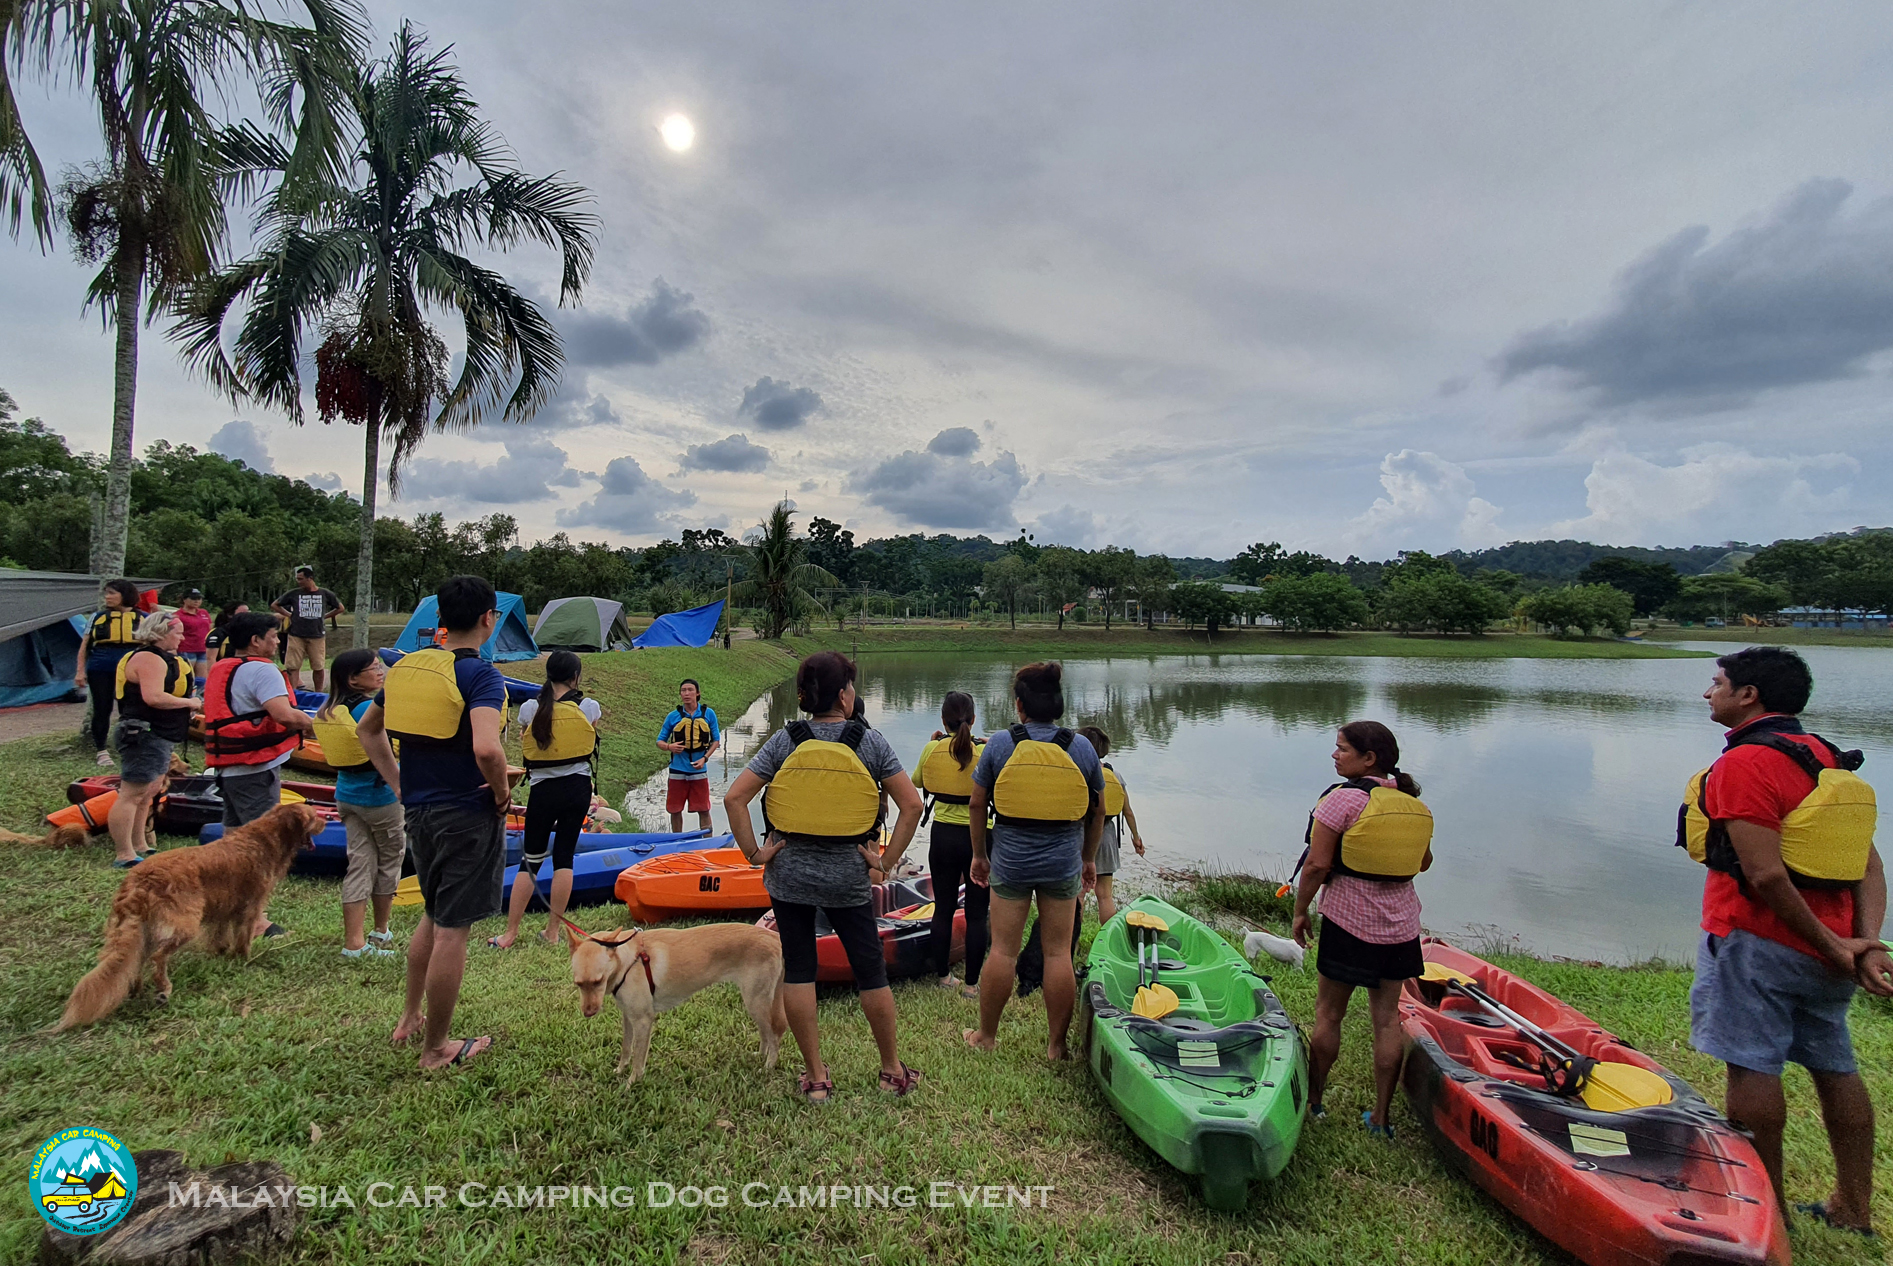 kayaking_dog_dog_camping_event_selangor_camping_site_malaysia_car_camping_private_event_organizer-3